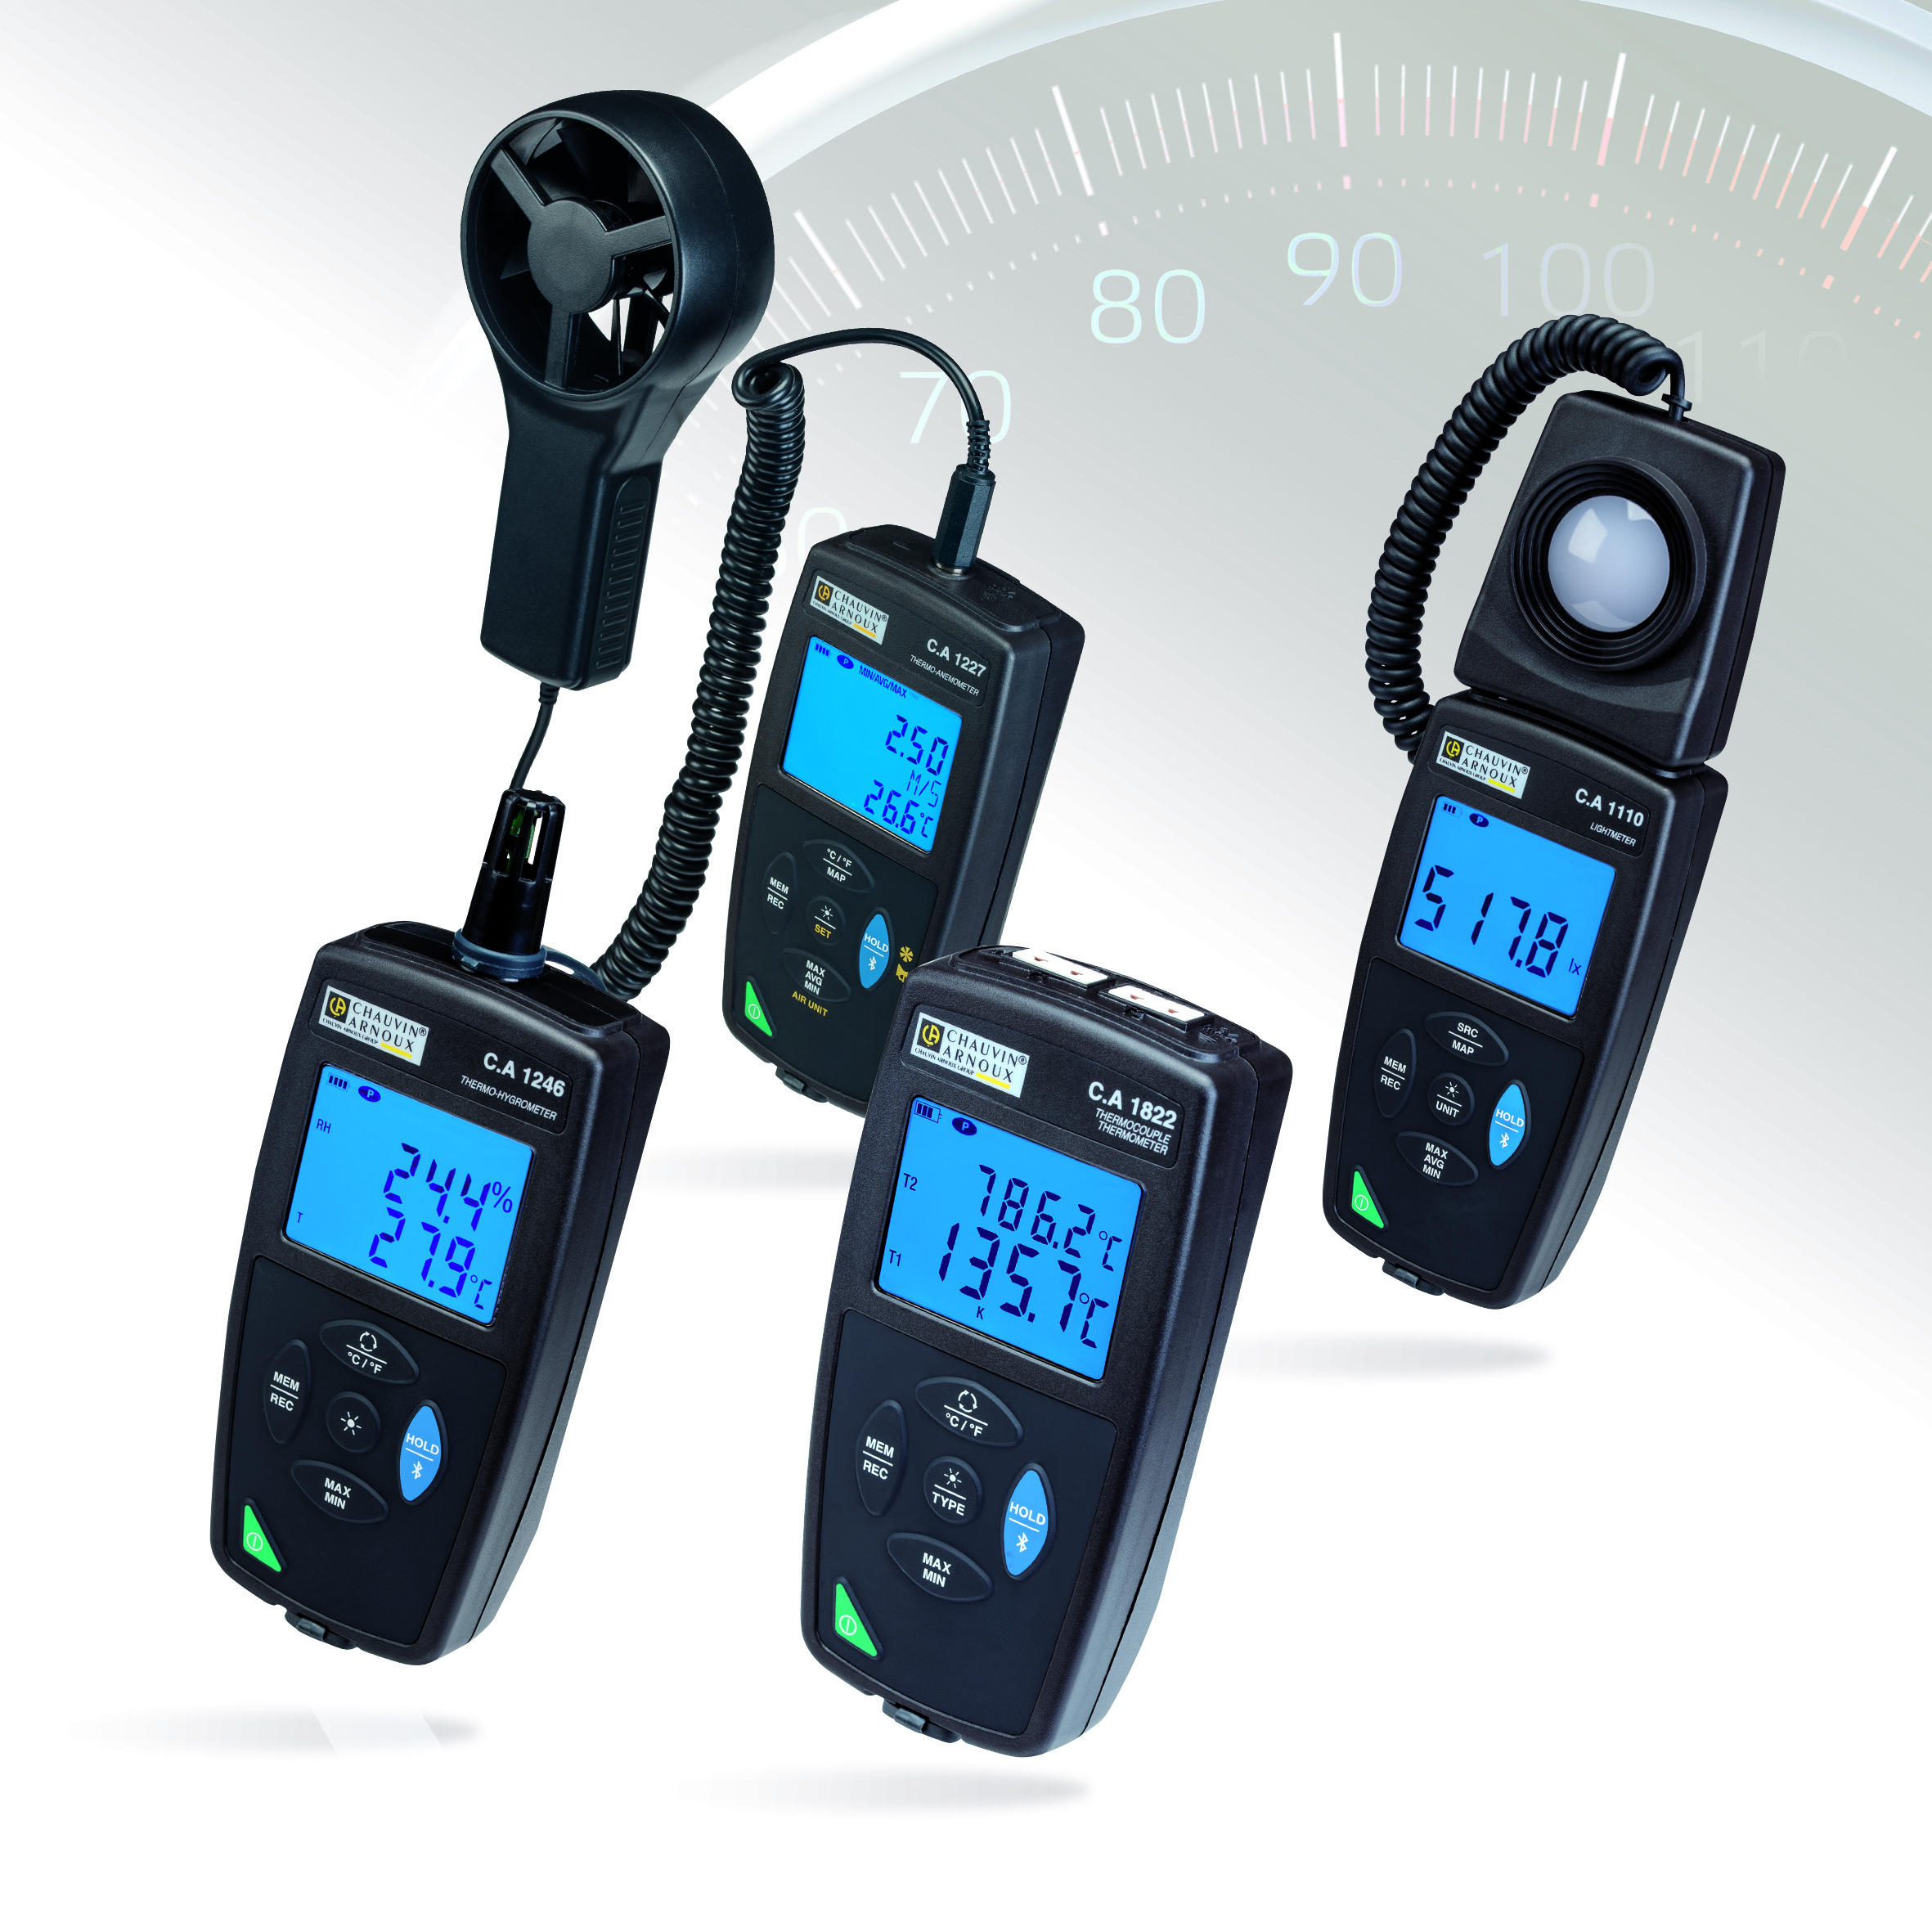 New range of environmental measurement instruments